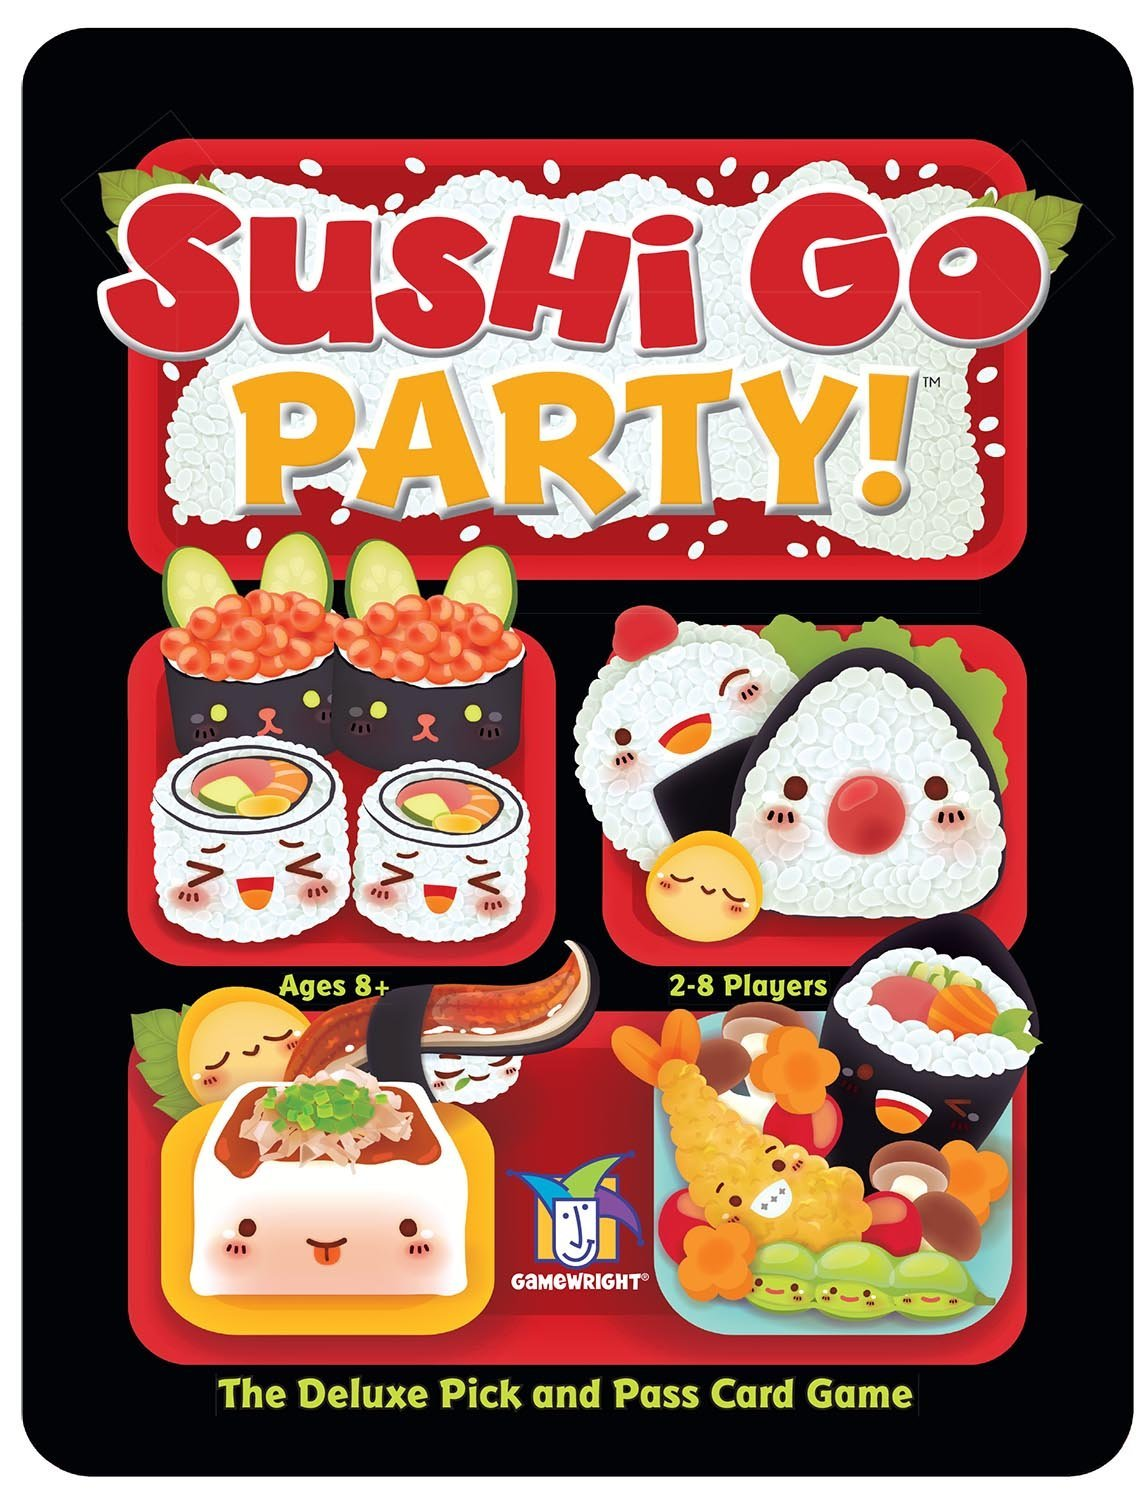 Sushi Go Party! - INTRODUCES: Card DraftingSushi Go Party is an excellent game for beginners because it has a good mix of strategy and luck combined. You can play up to 8 players which makes it a great easy group game.  Sushi Go Party is a card drafting game where each player looks through a stack of cards, picks one, and passes it to the player to their left. Players try to select card combinations that will score them the most points at the end of three rounds. This is a great introduction to card drafting mechanics and prepares players to play more advanced games like Dominion and 7 Wonders.